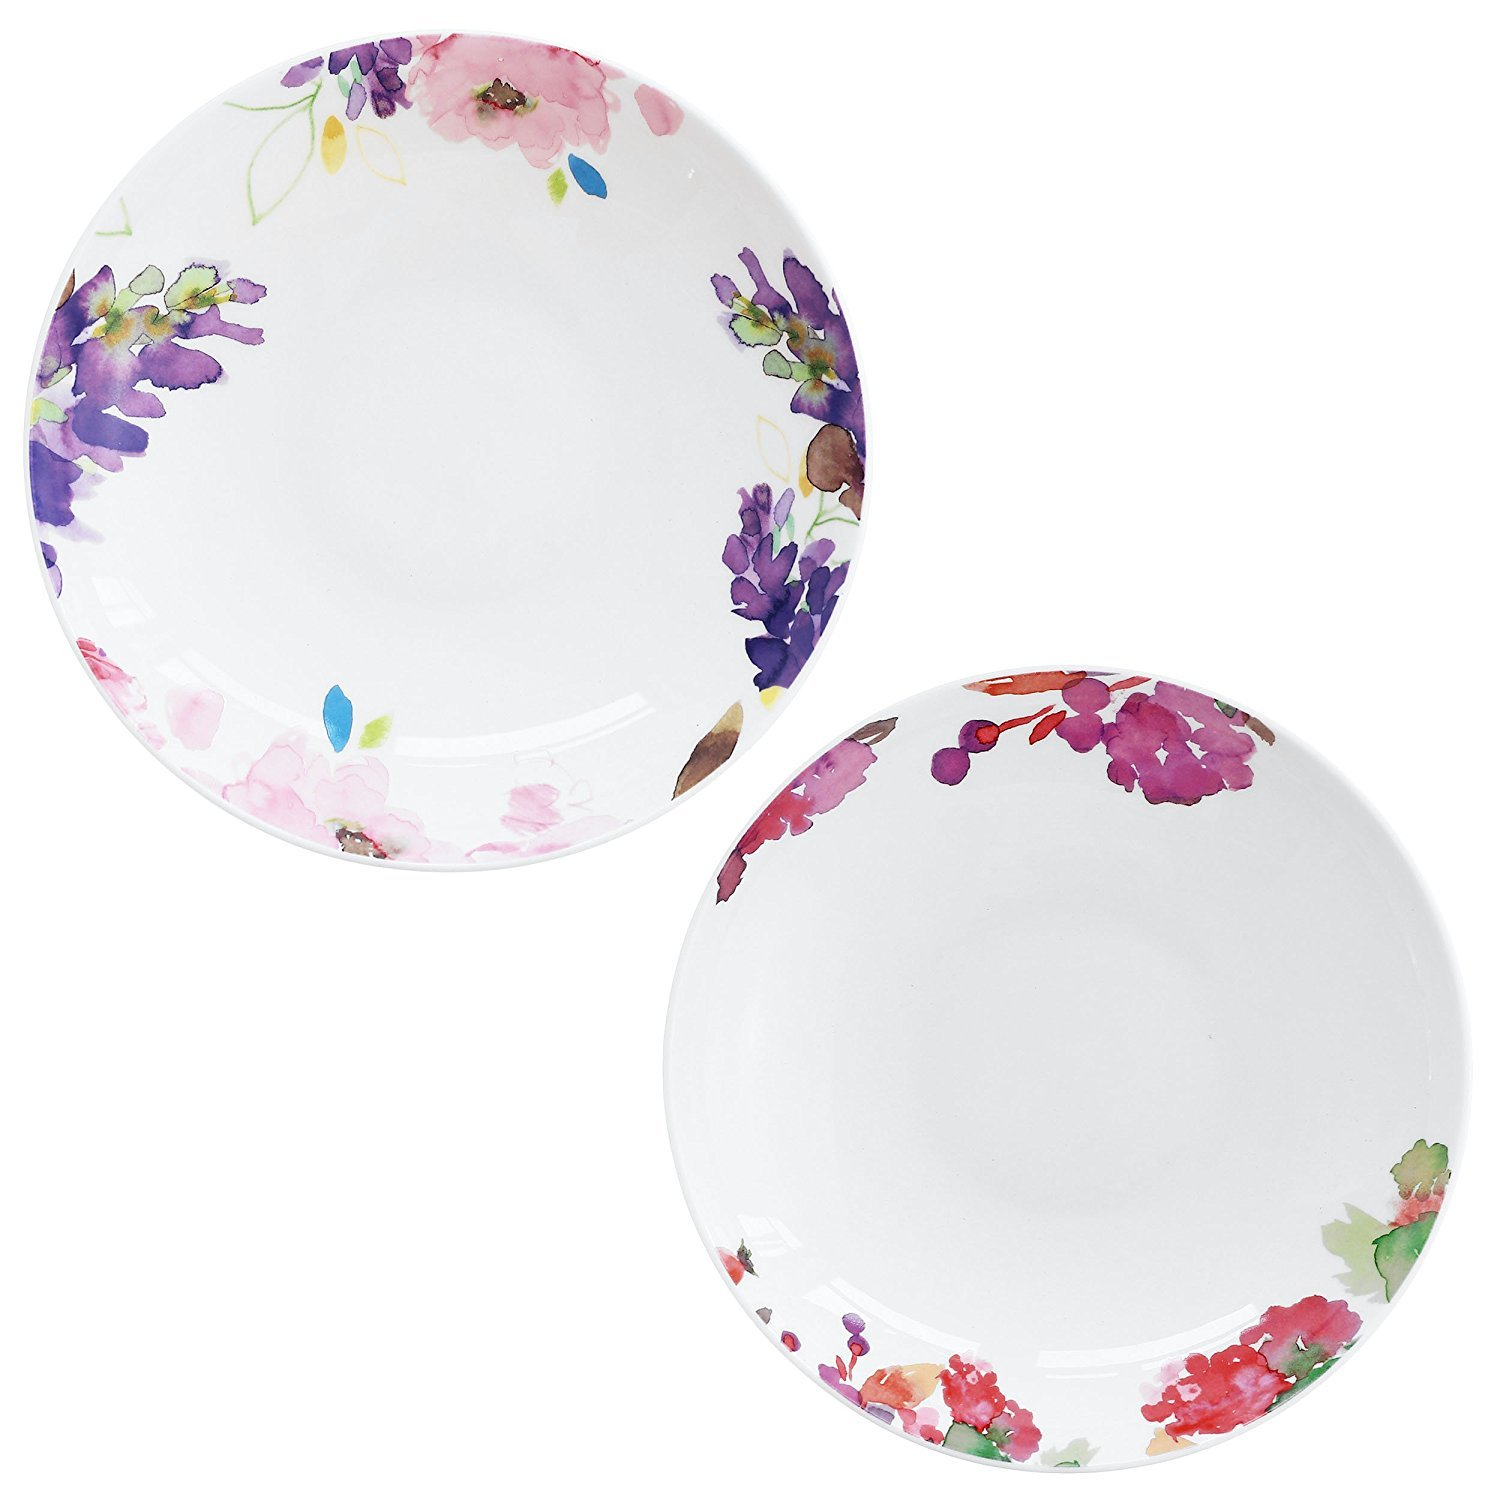 DoubleBlue 8'' Rounded Soup Plate (Set of 2) Bone China pastoral for Everyday use - Watercolor Flowers and Fruits, Milticolors